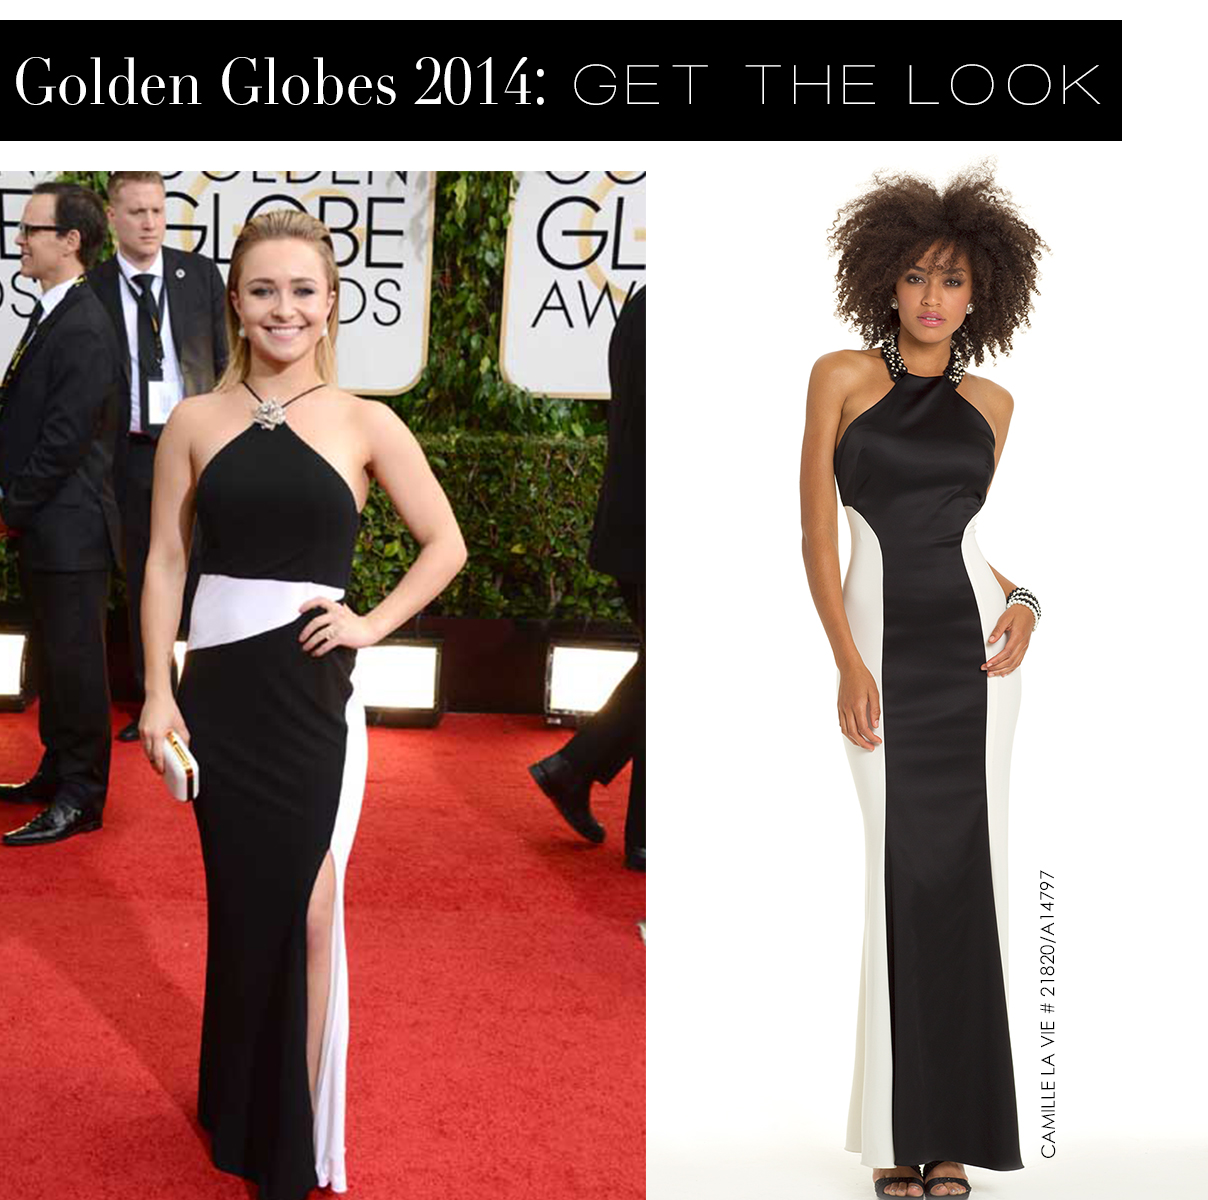 Get The Red Carpet Style Look For Less With Camille La Vie Camille